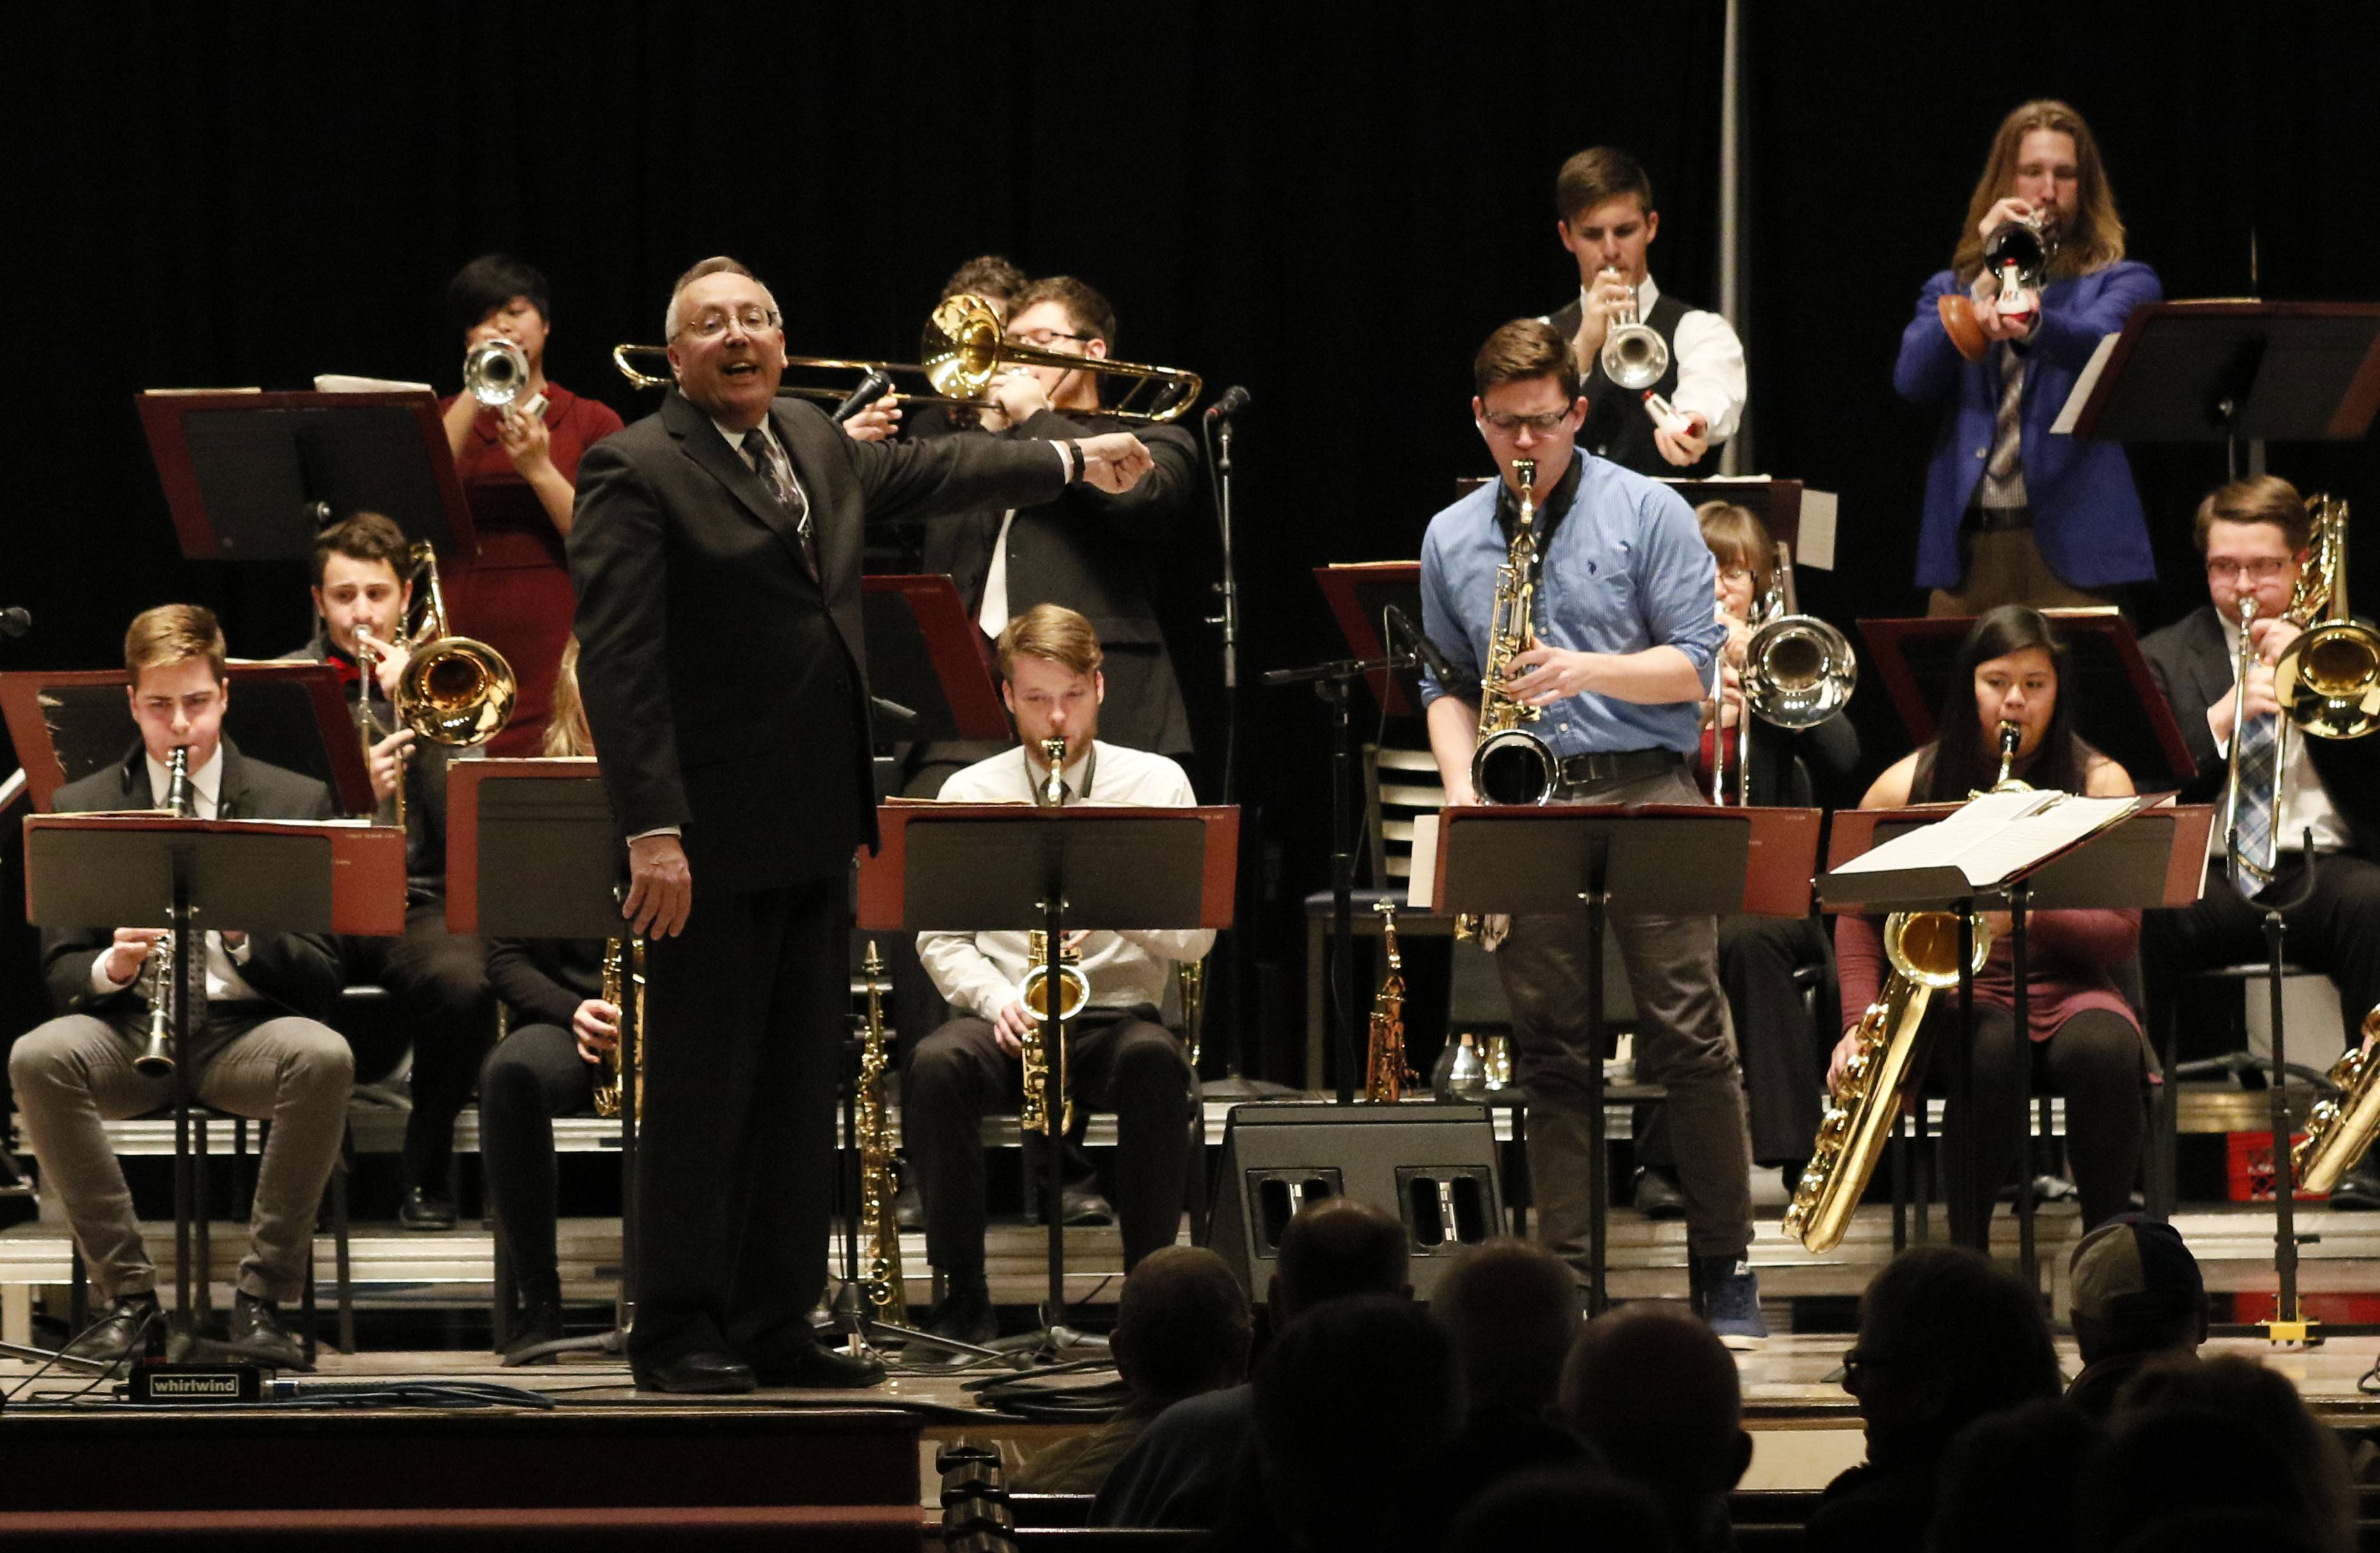 Morningside College Big Band Director Russ Nagel Acknowledges A Solo  Performance During The 51st Annual Elmhurst